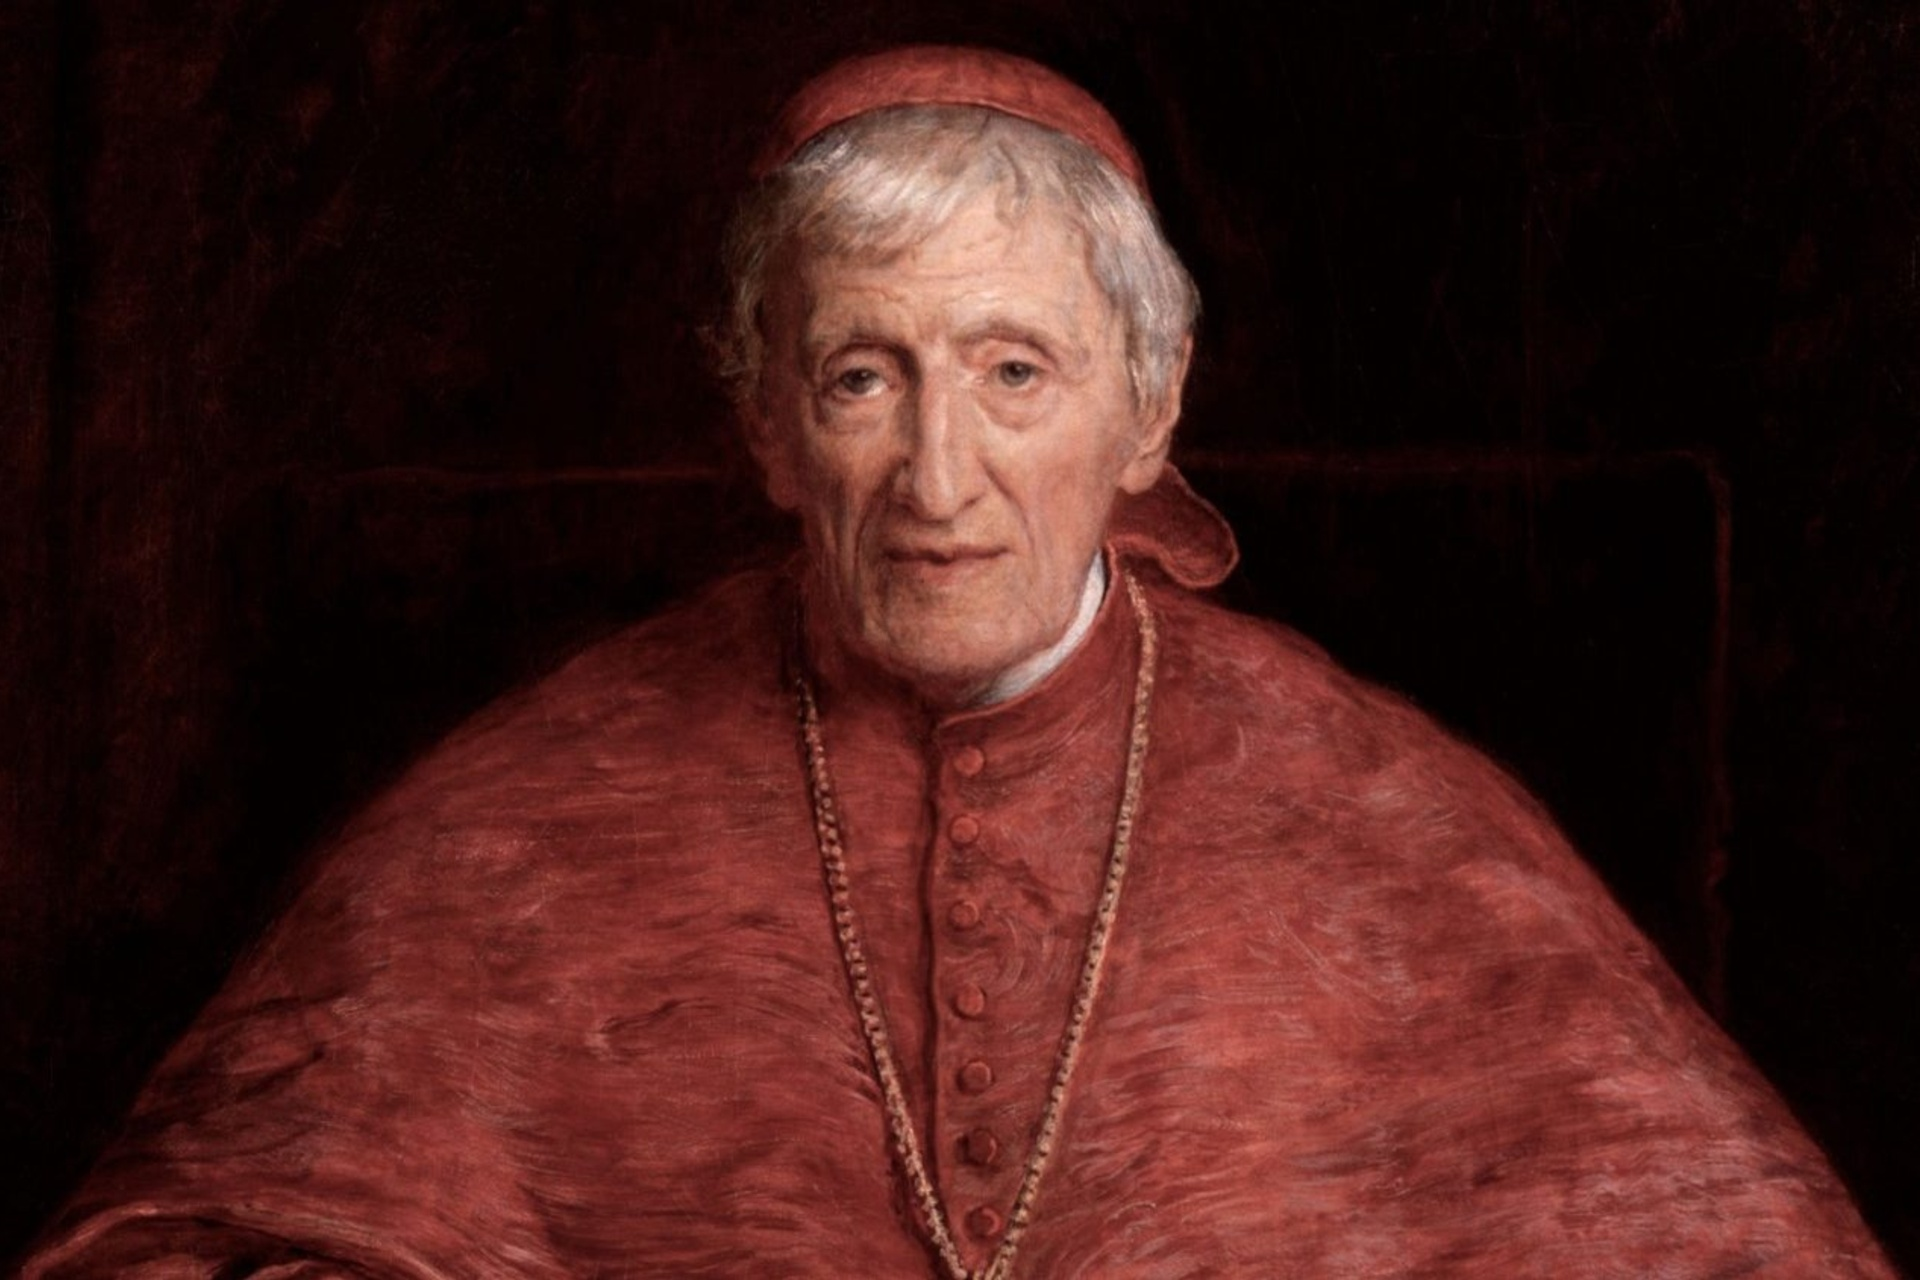 Canonisation of Cardinal John Henry Newman